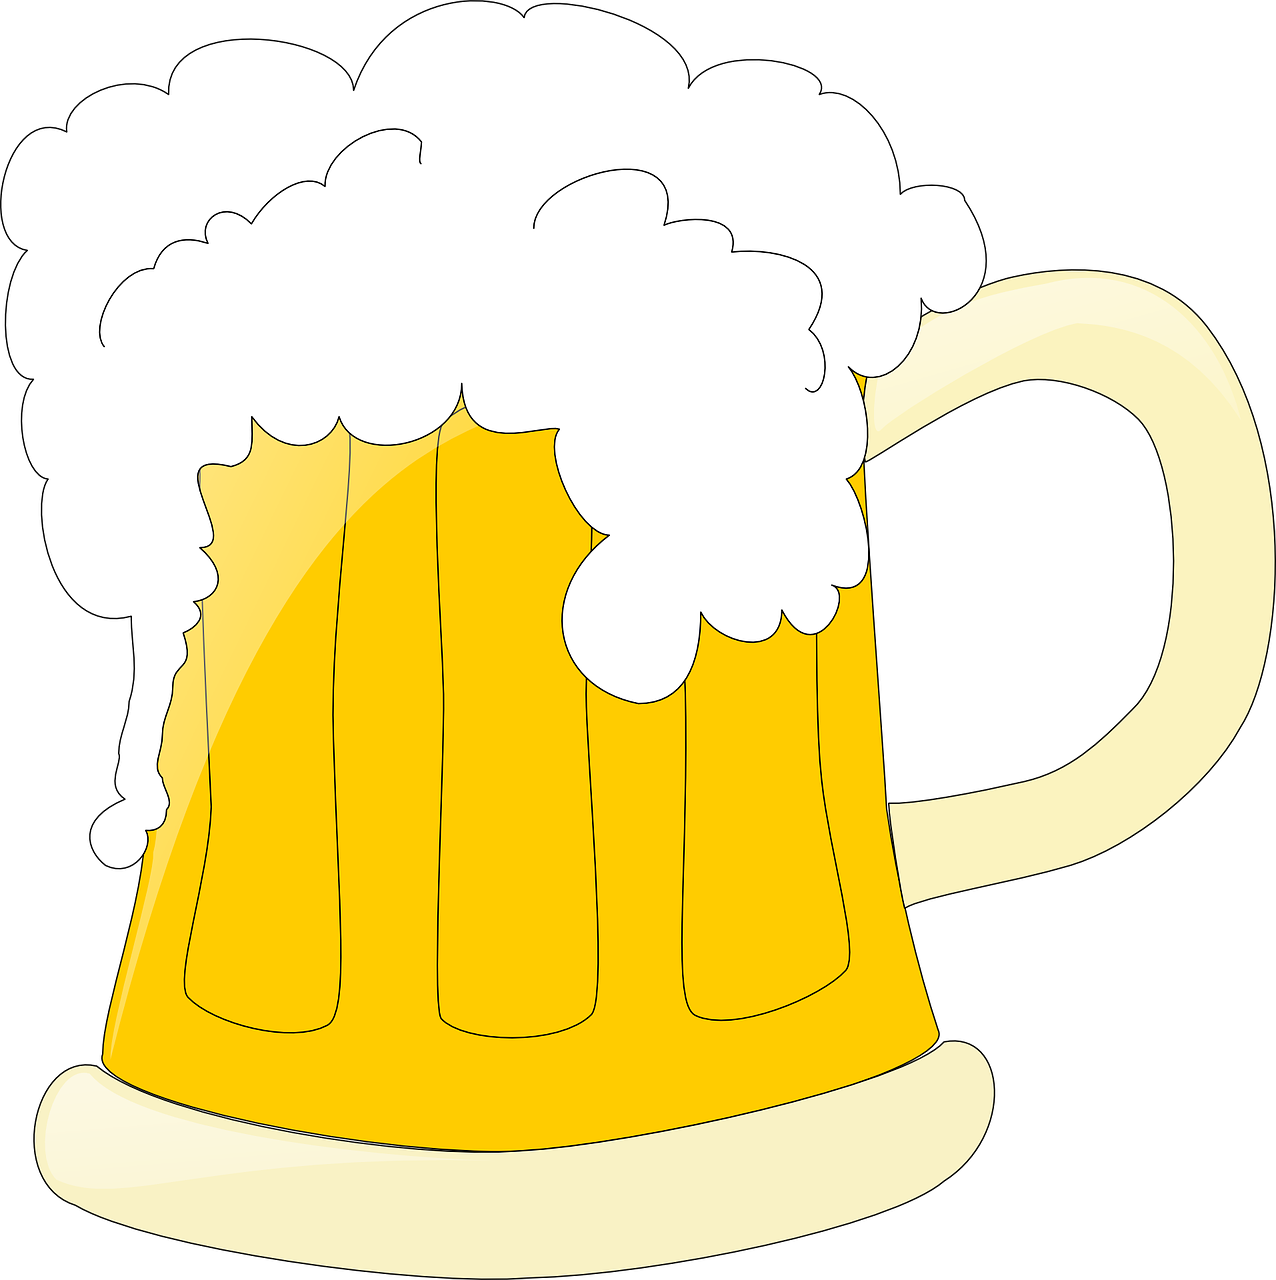 beer,mug,foam,alcohol,glass,beverage,drink,lager,froth,ale,pint,refreshment,yellow,booze,free vector graphics,free pictures, free photos, free images, royalty free, free illustrations, public domain